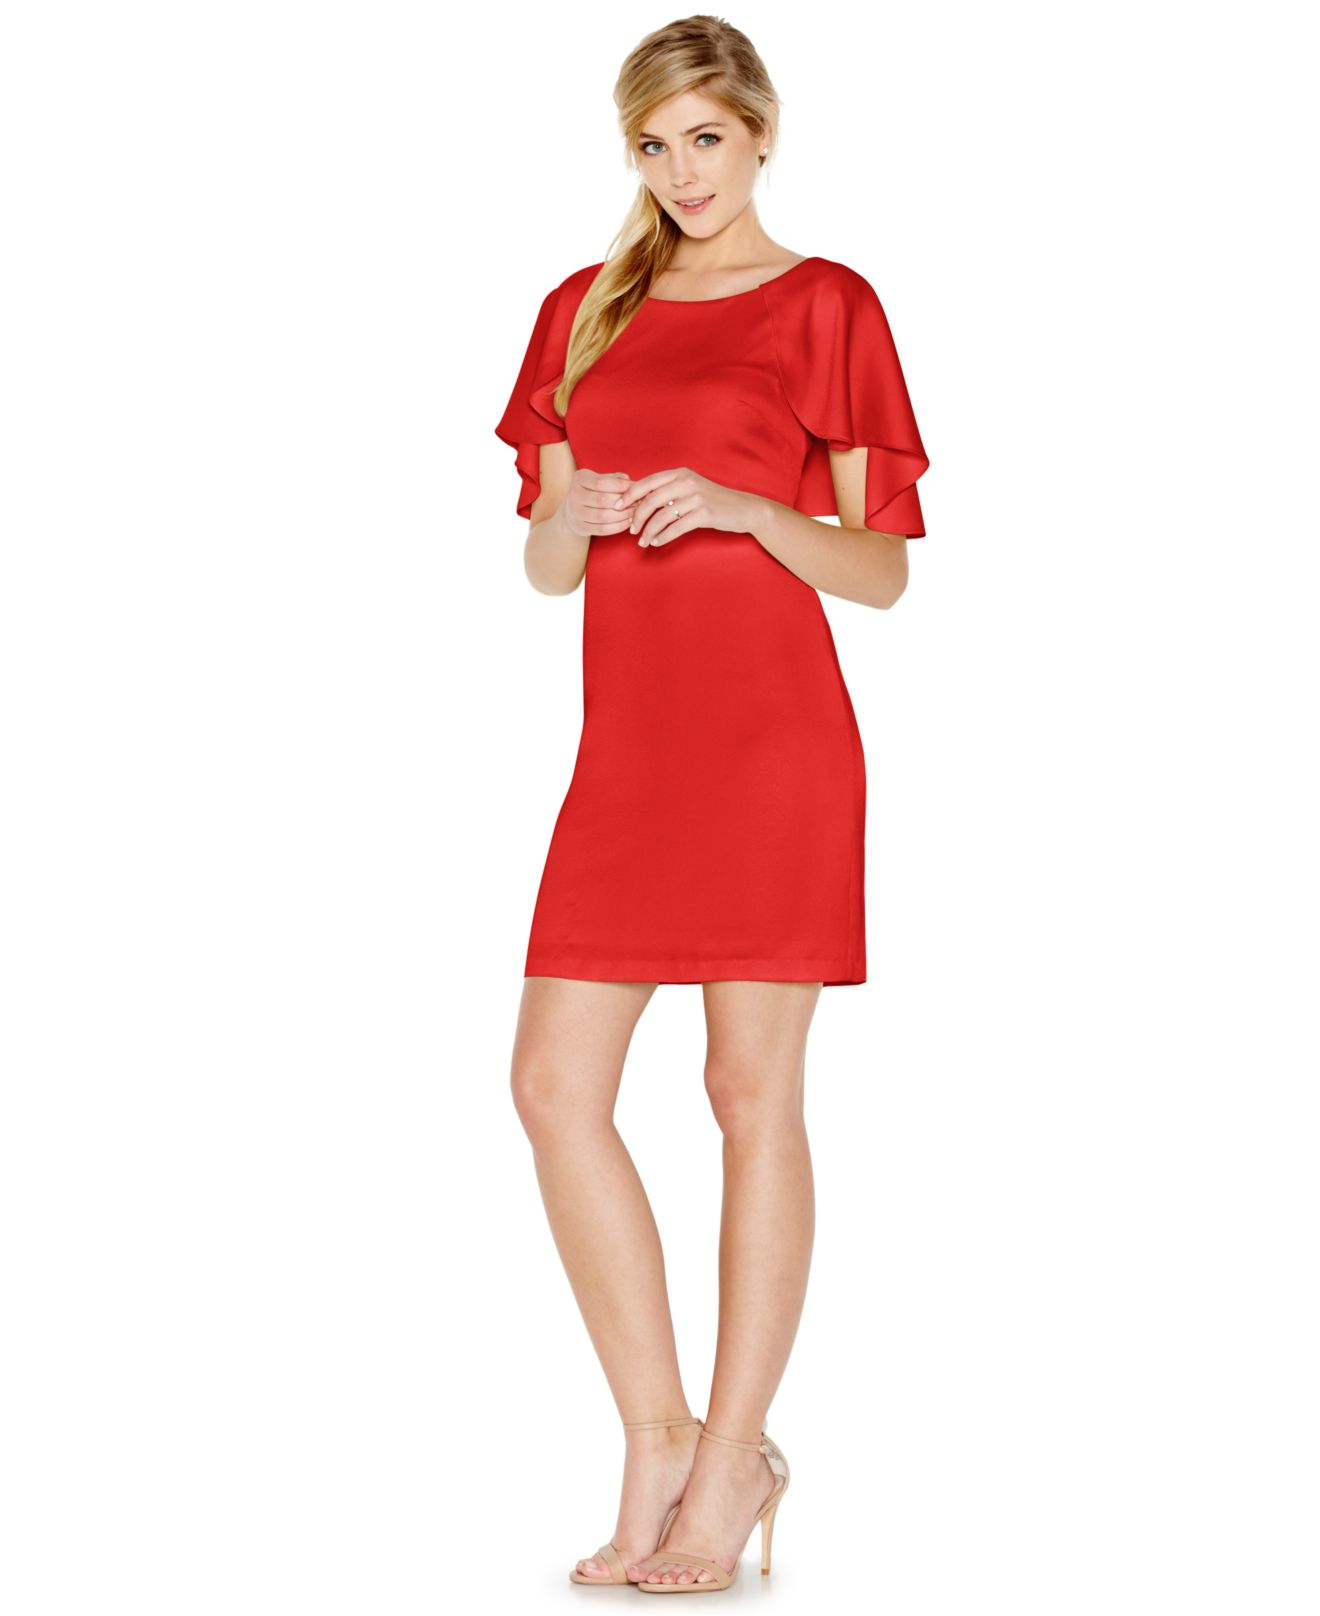 Jessica Simpson Red Dresses